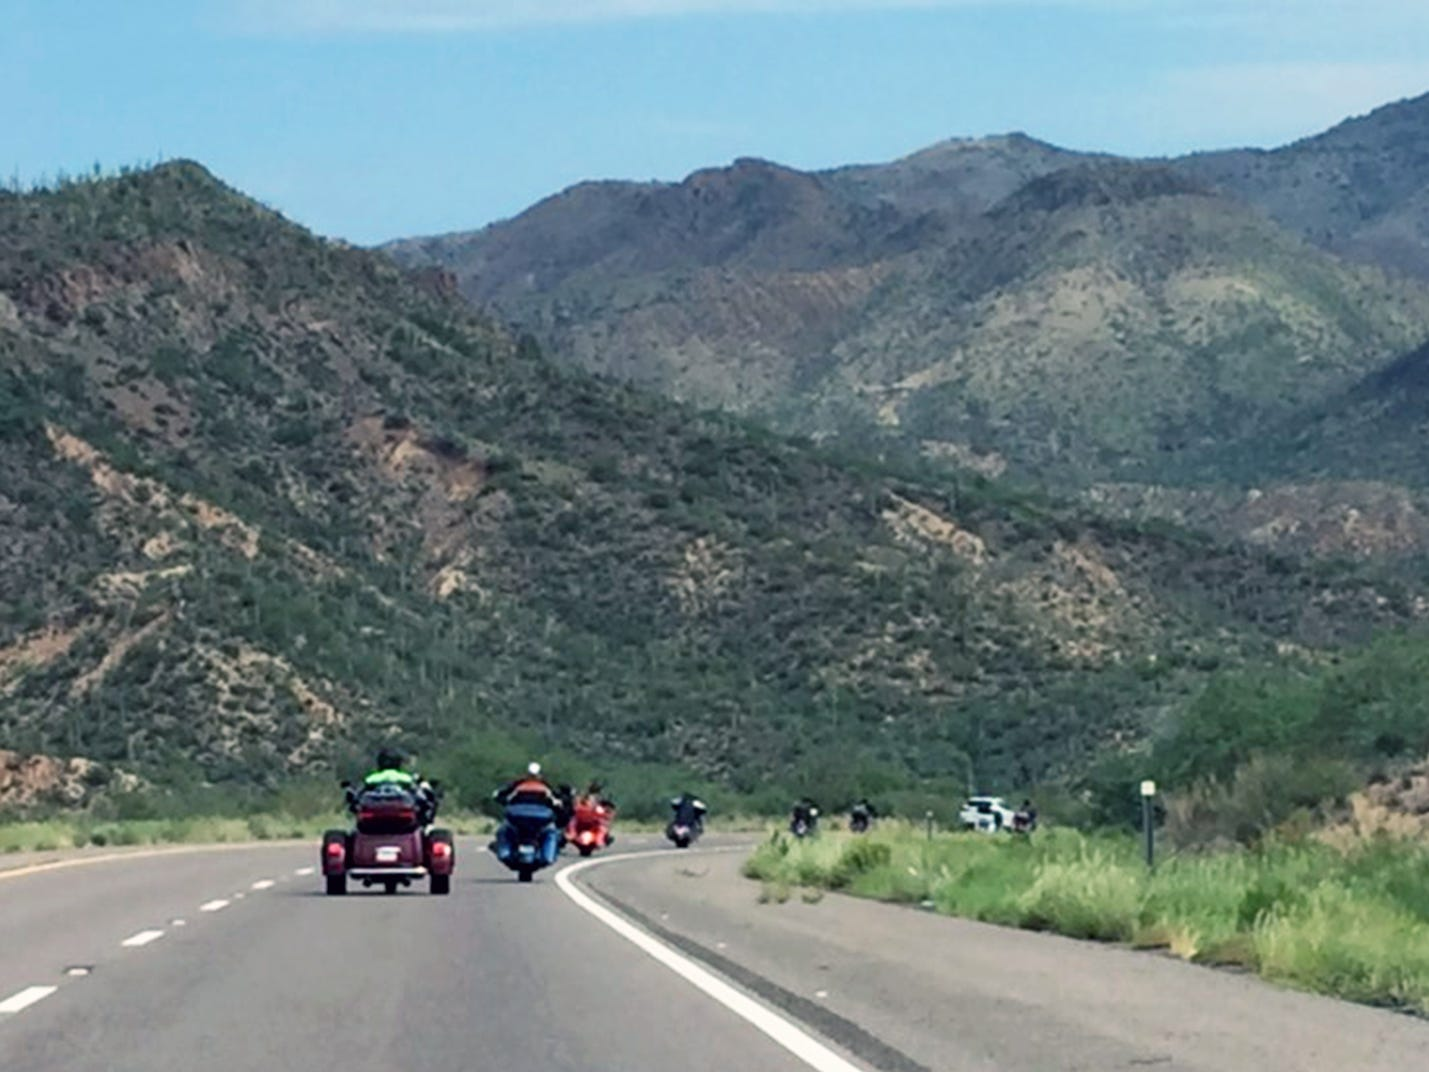 Thirty bikes joined Day 2 of the nine-day Harley-Davidson 115th anniversary ride between San Diego and Milwaukee. Two of the riders were Karen Davidson and Bill Davidson, great-grandchildren of co-founder William Davidson. This photo was taken in the Tonto National Forest between Scottsdale and Payson, Arizona.